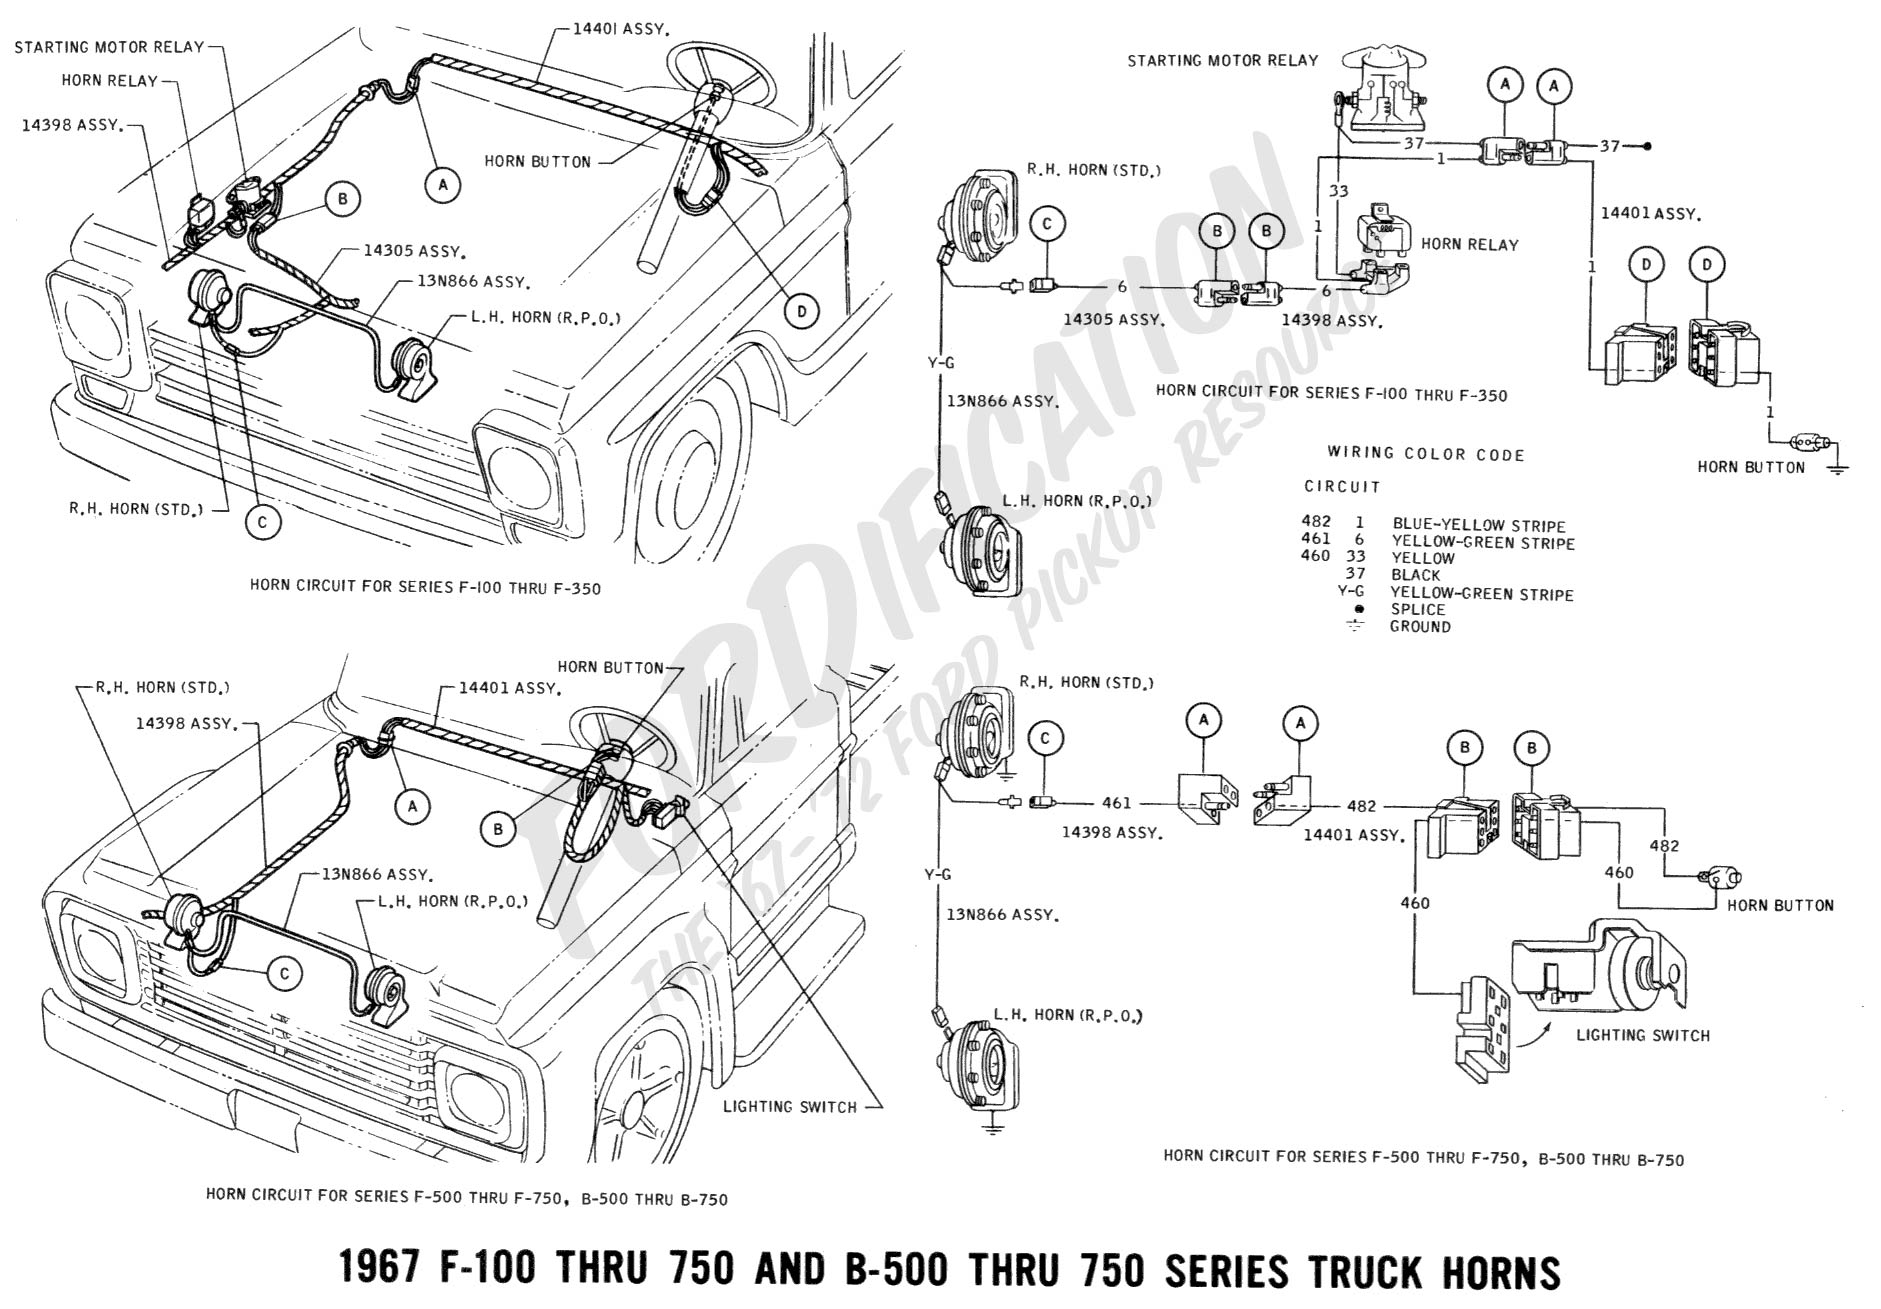 1988 Ford Ranger Light Wiring Diagram. Ford. Wiring